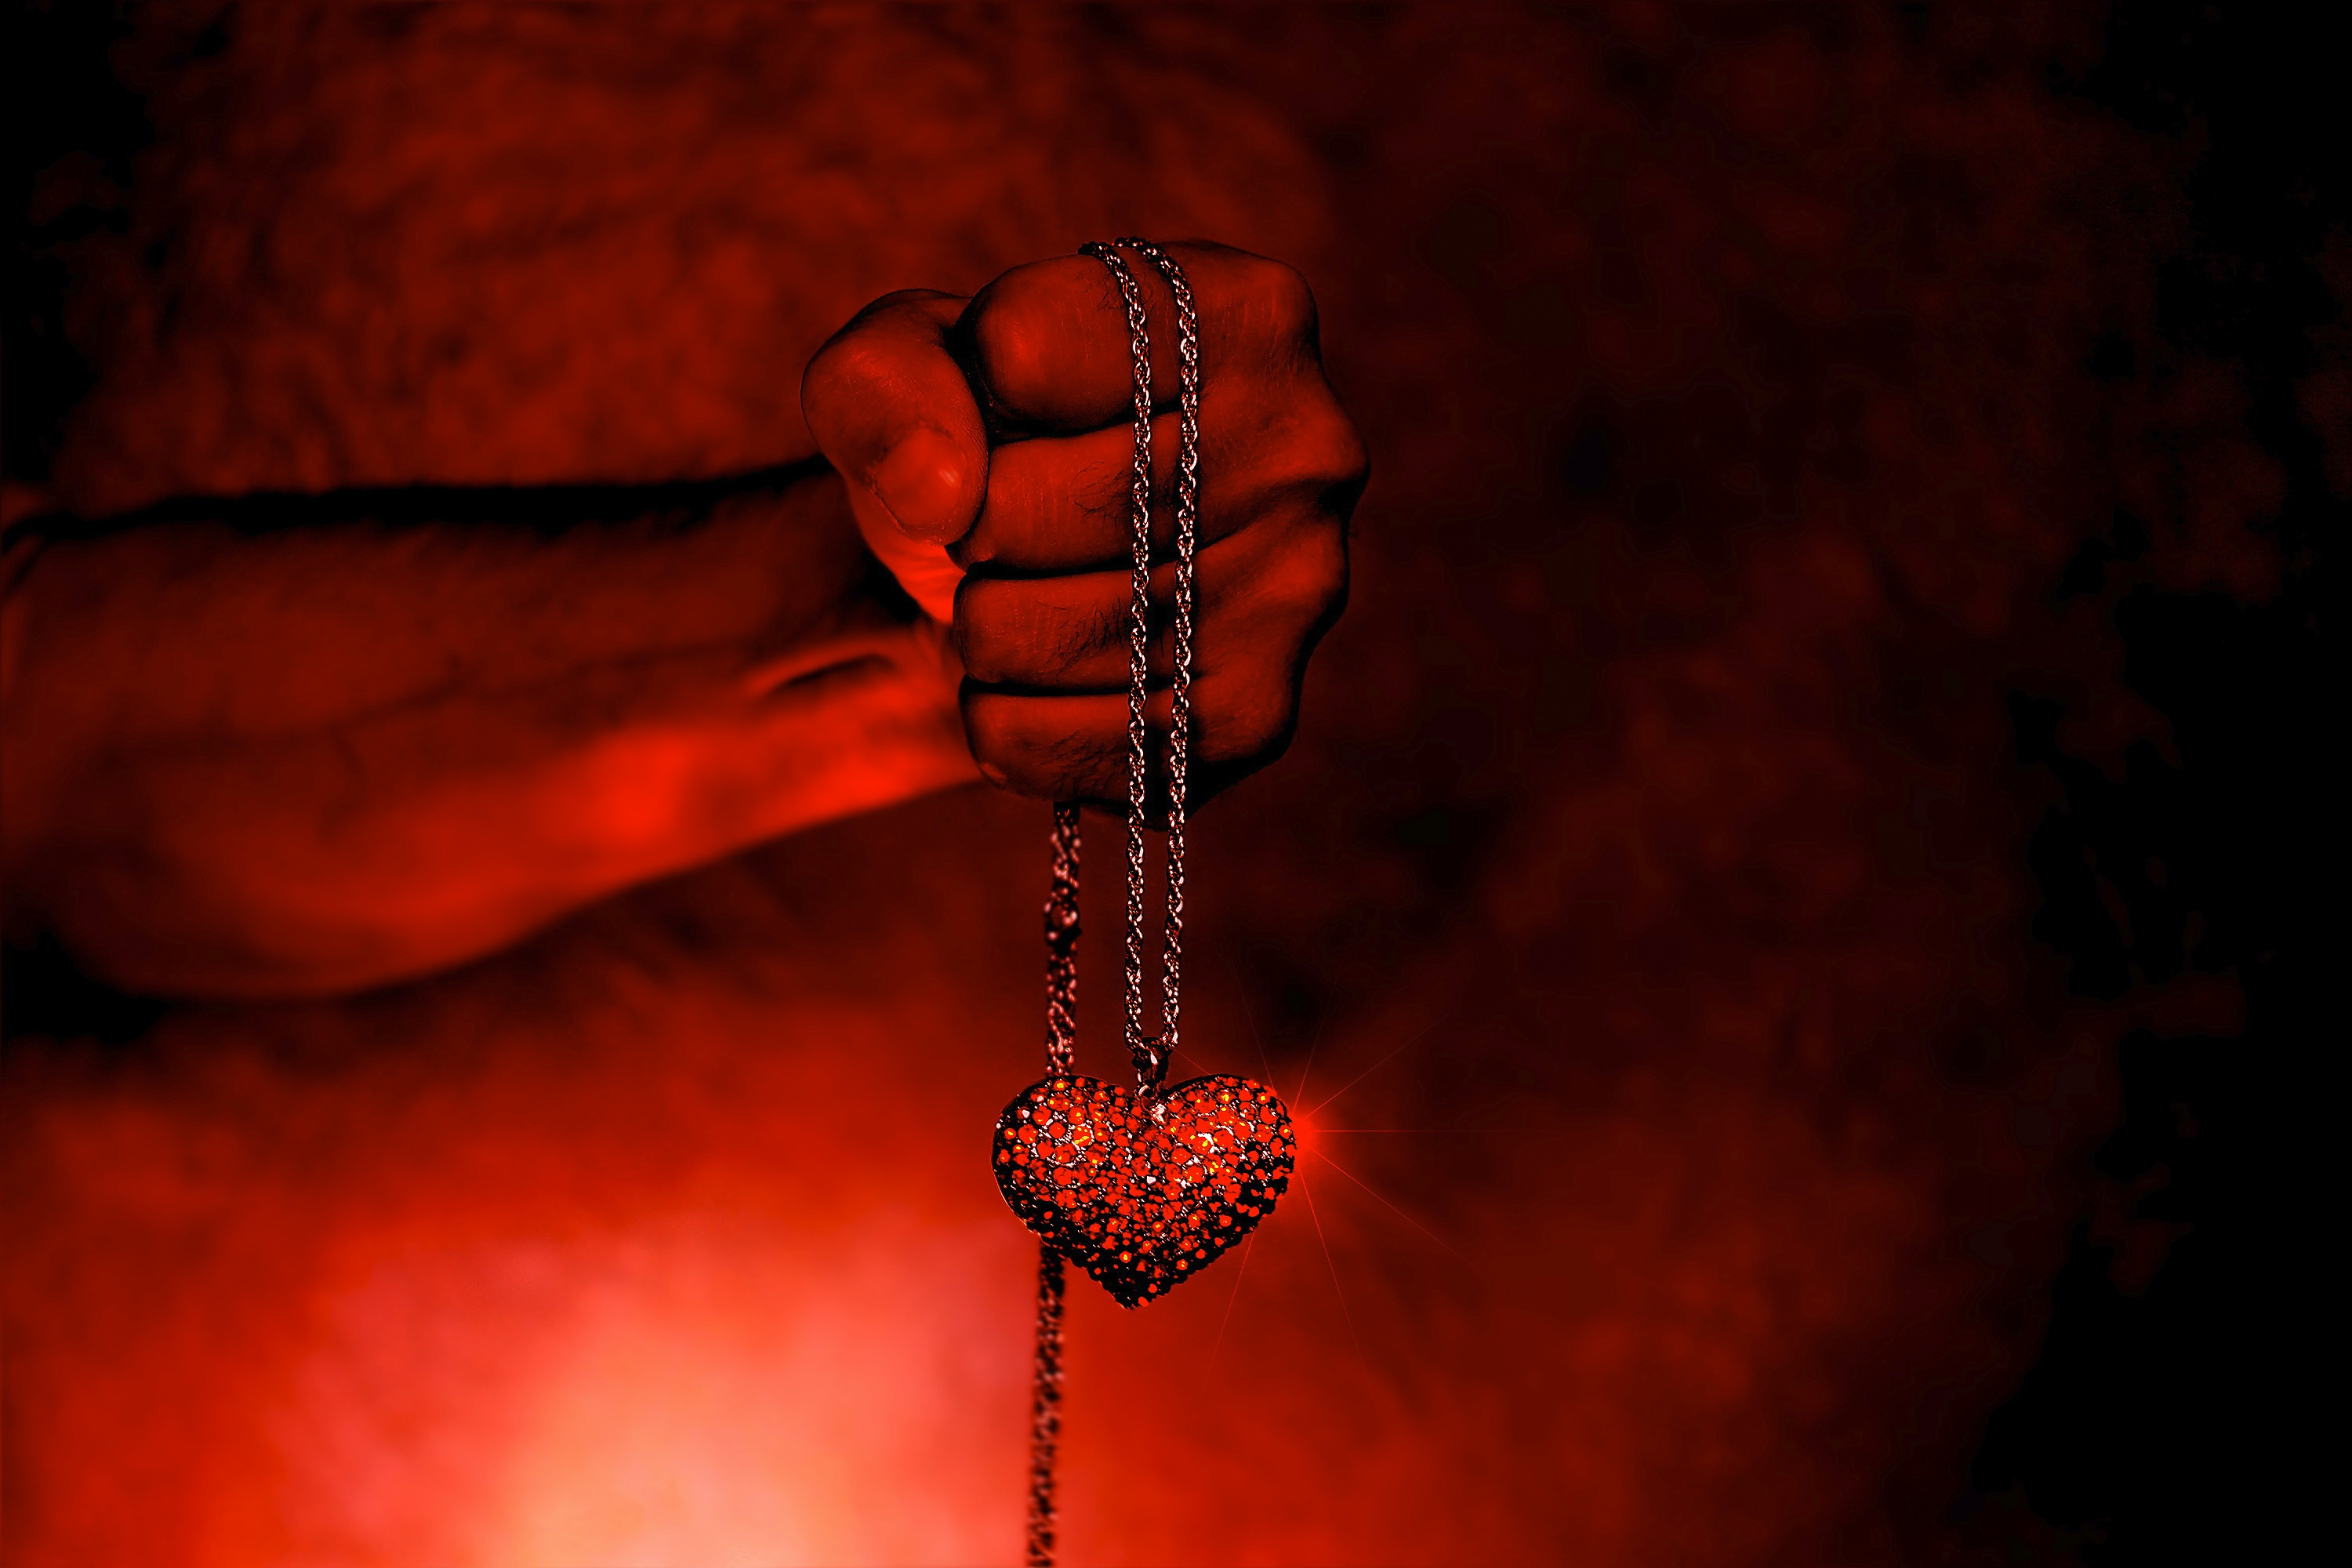 75531 download wallpaper Miscellanea, Miscellaneous, Heart, Hand, Chain, Shine, Brilliance screensavers and pictures for free